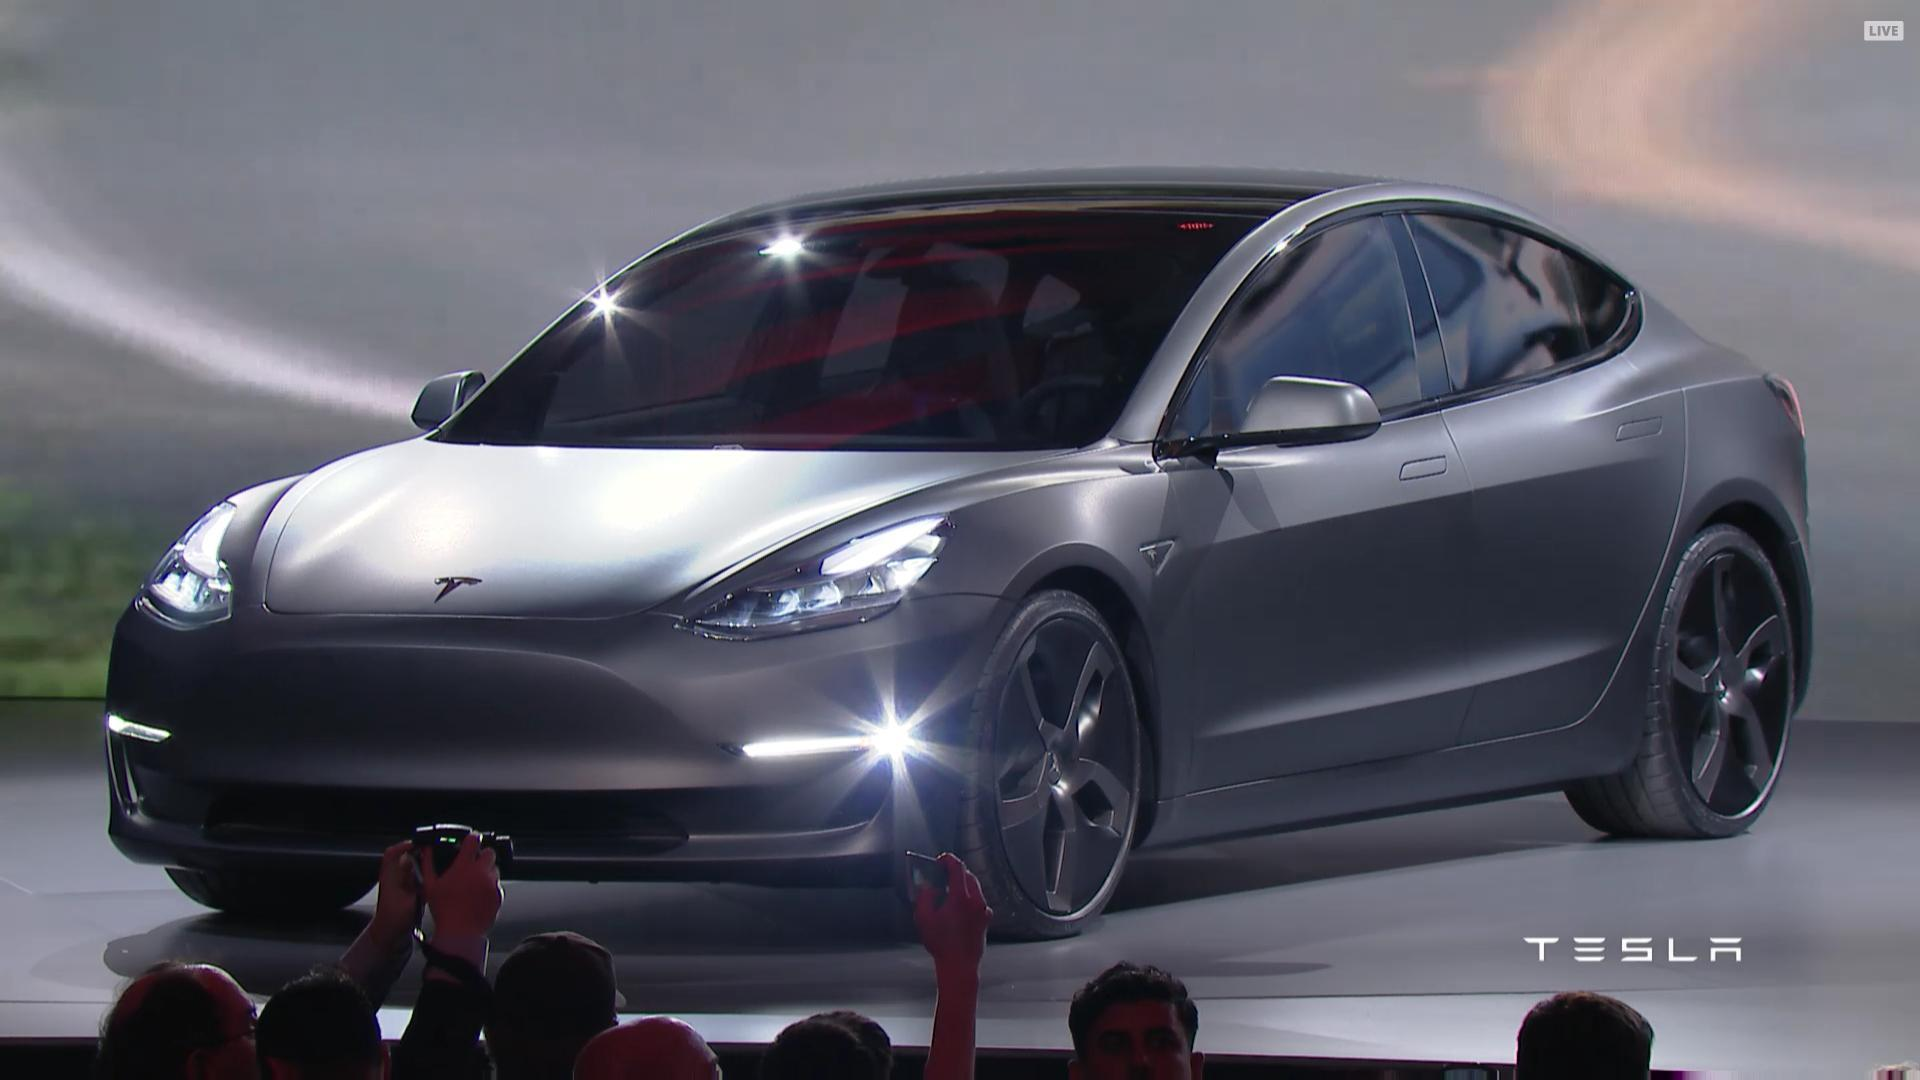 Tesla's affordable Model 3 overwhelms expectations